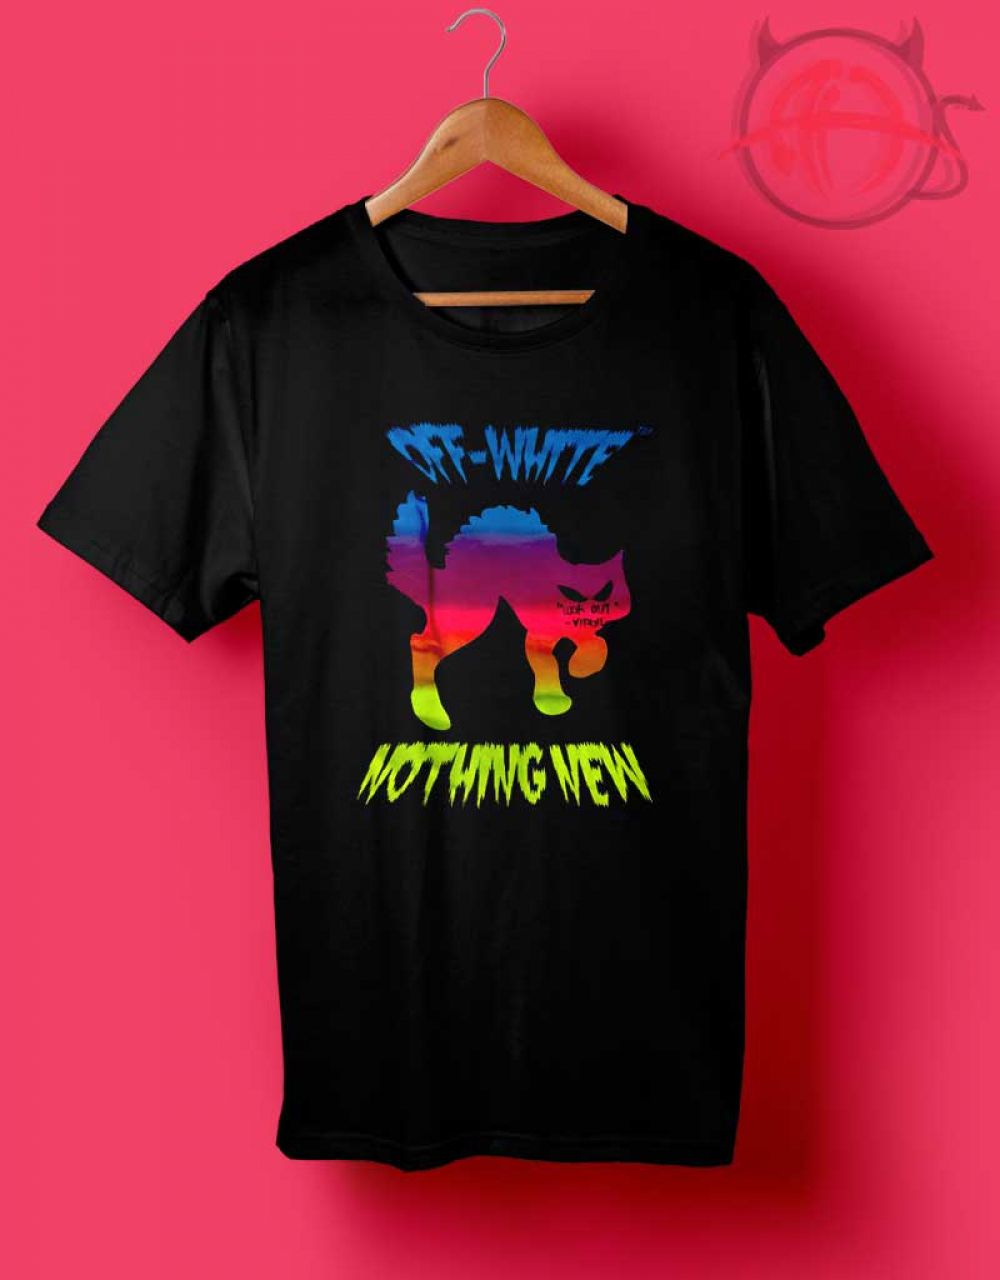 Off Nothing New 14 50 Shirts